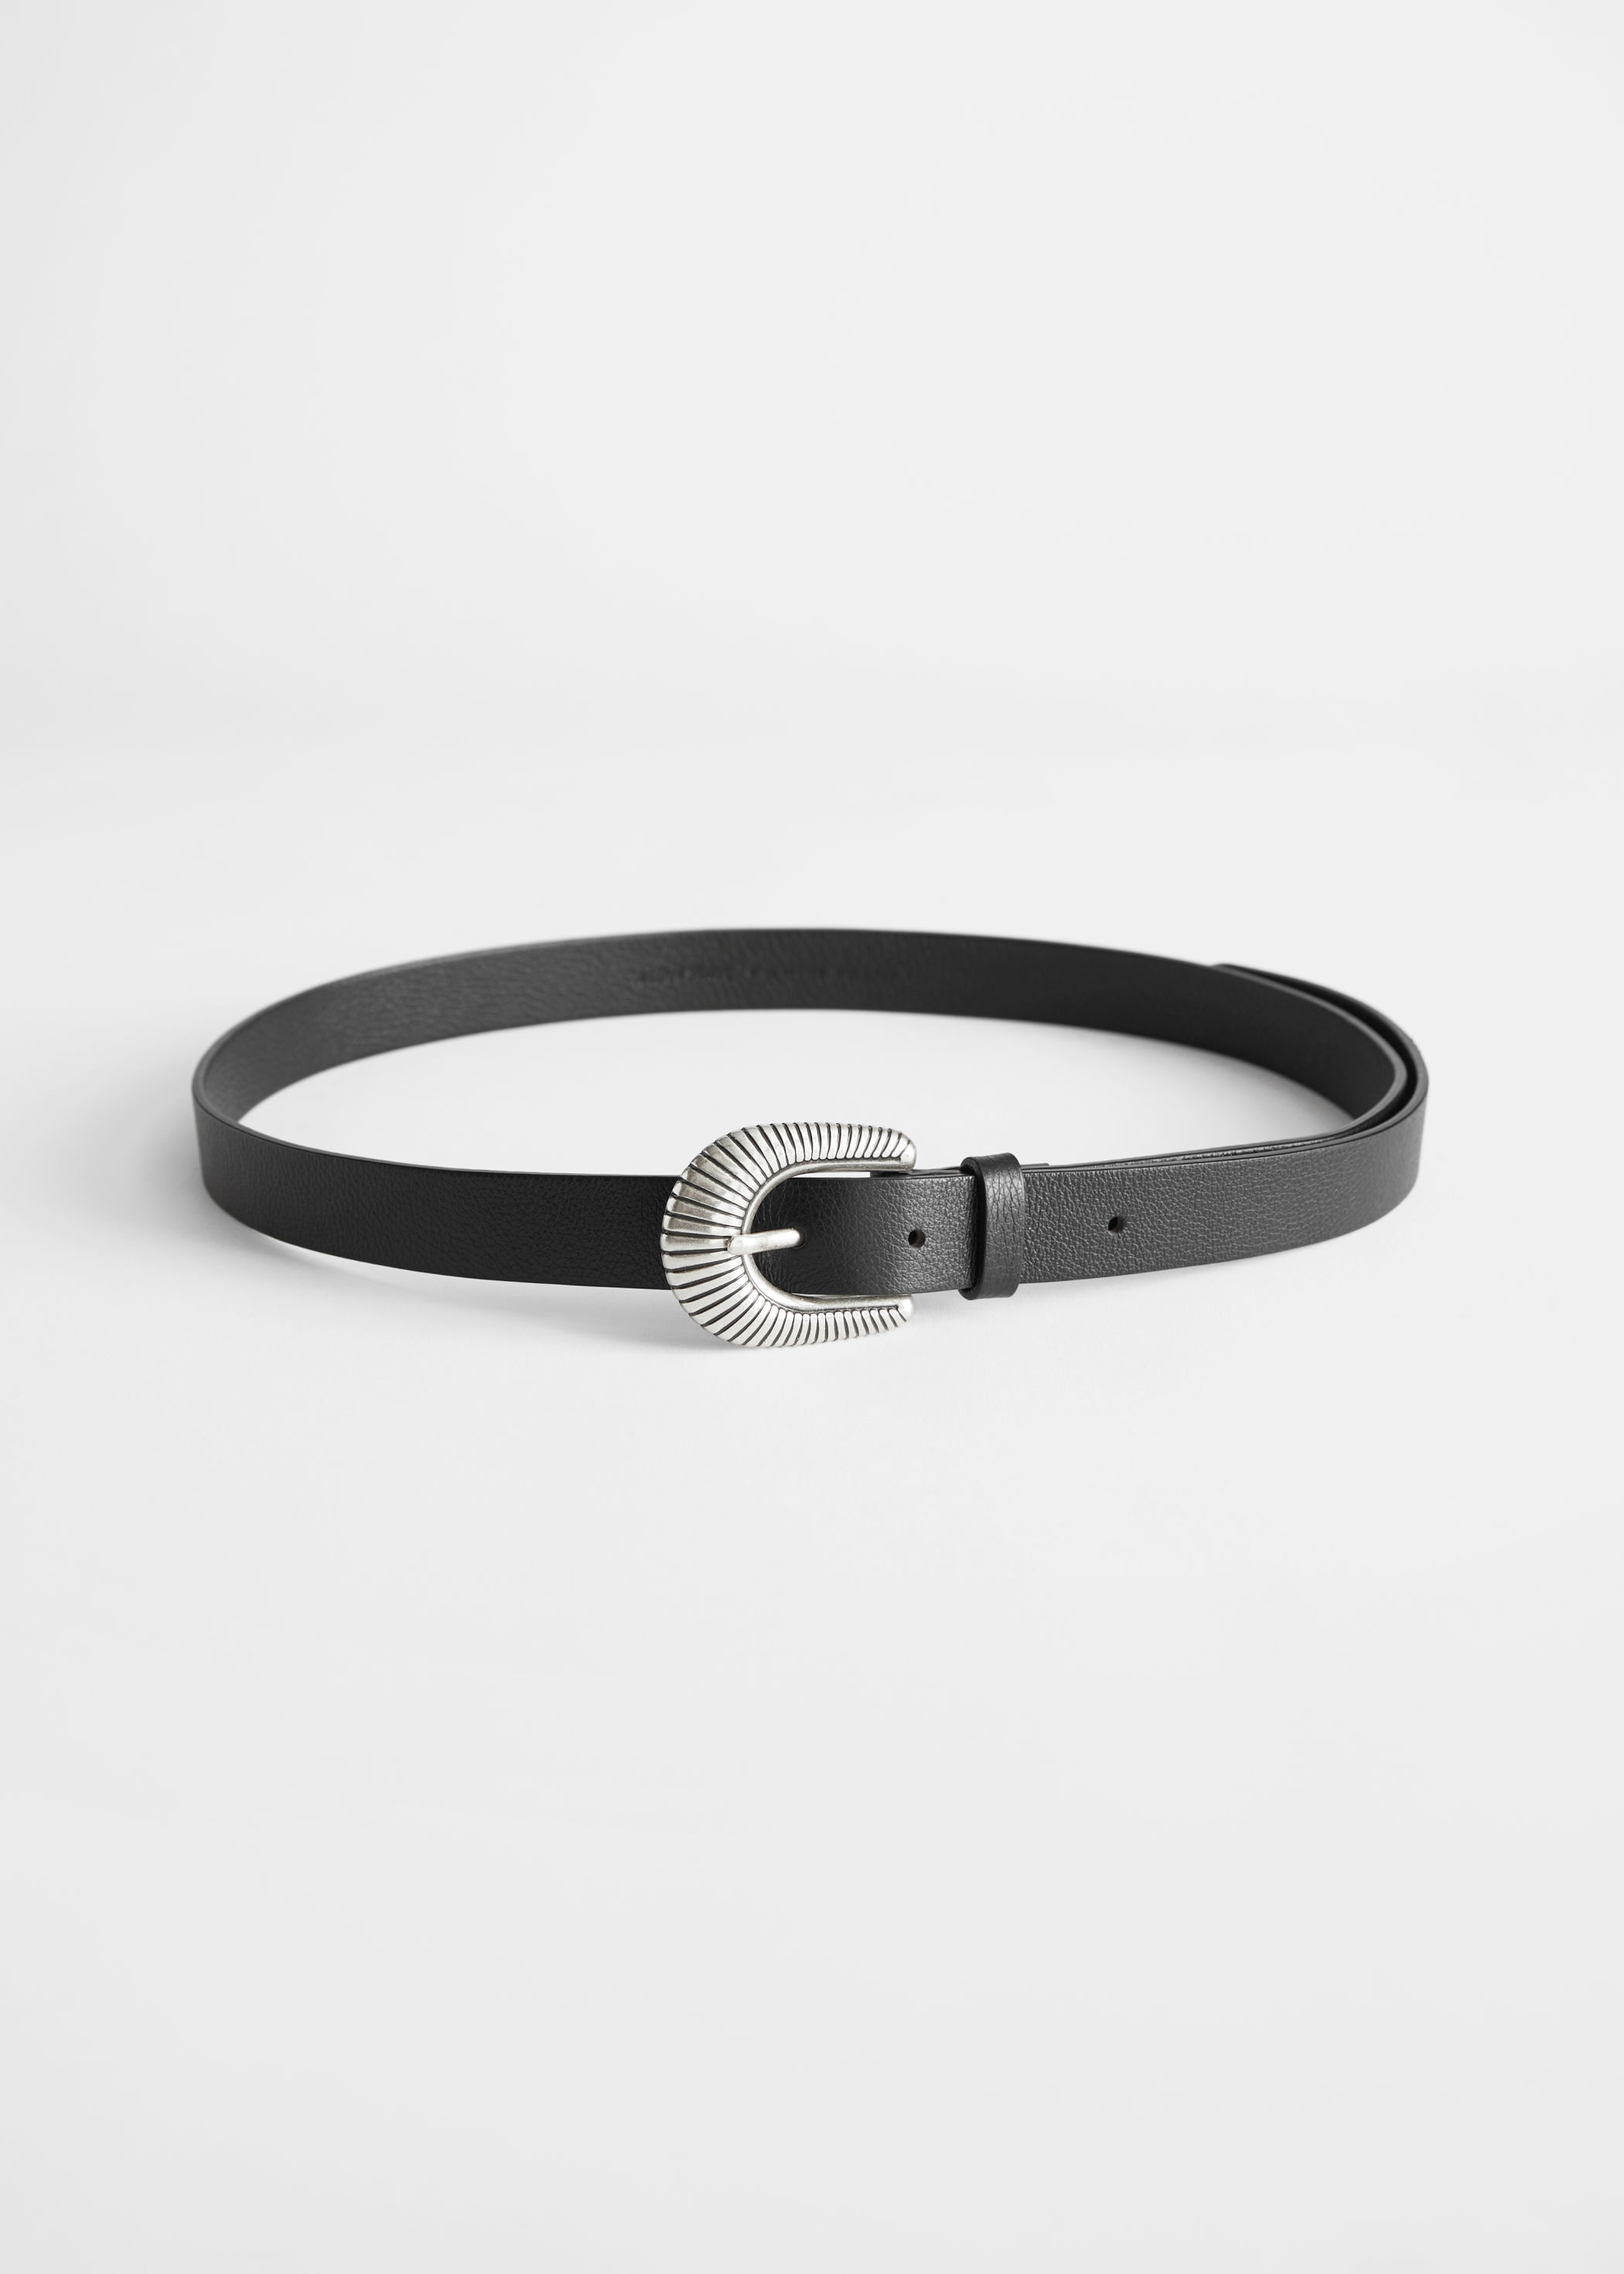 앤 아더 스토리즈 벨트 & OTHER STORIES Western Buckle Leather Belt,Black